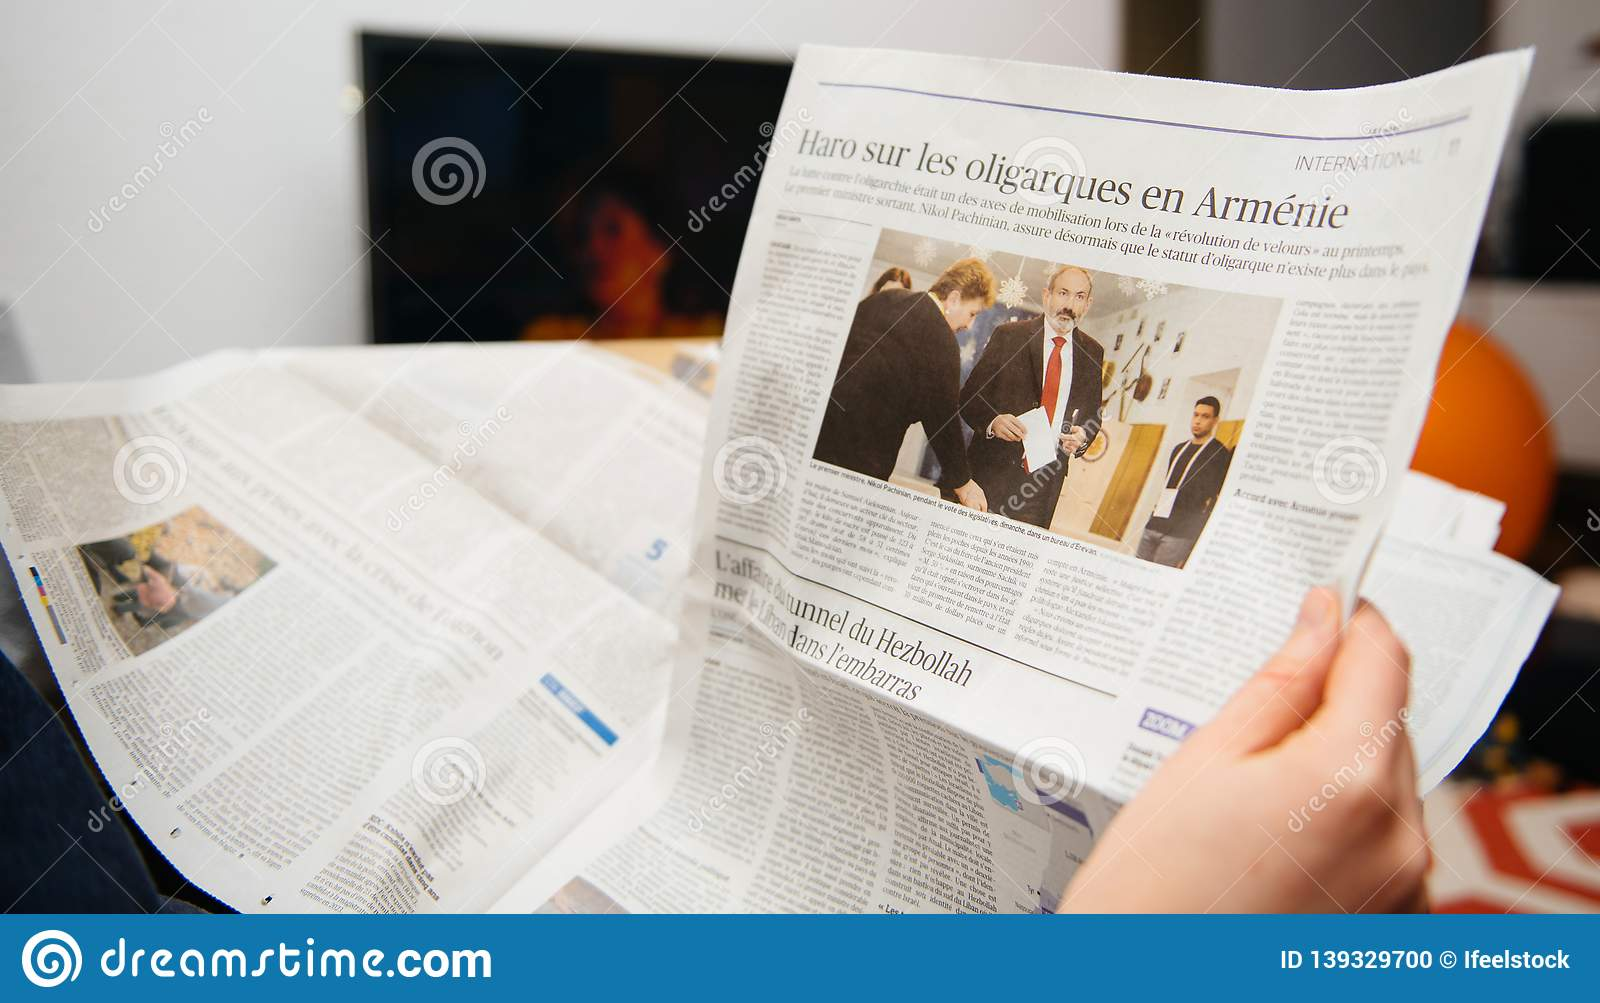 Woman reading french le figaro newspaper armenian oligarchs